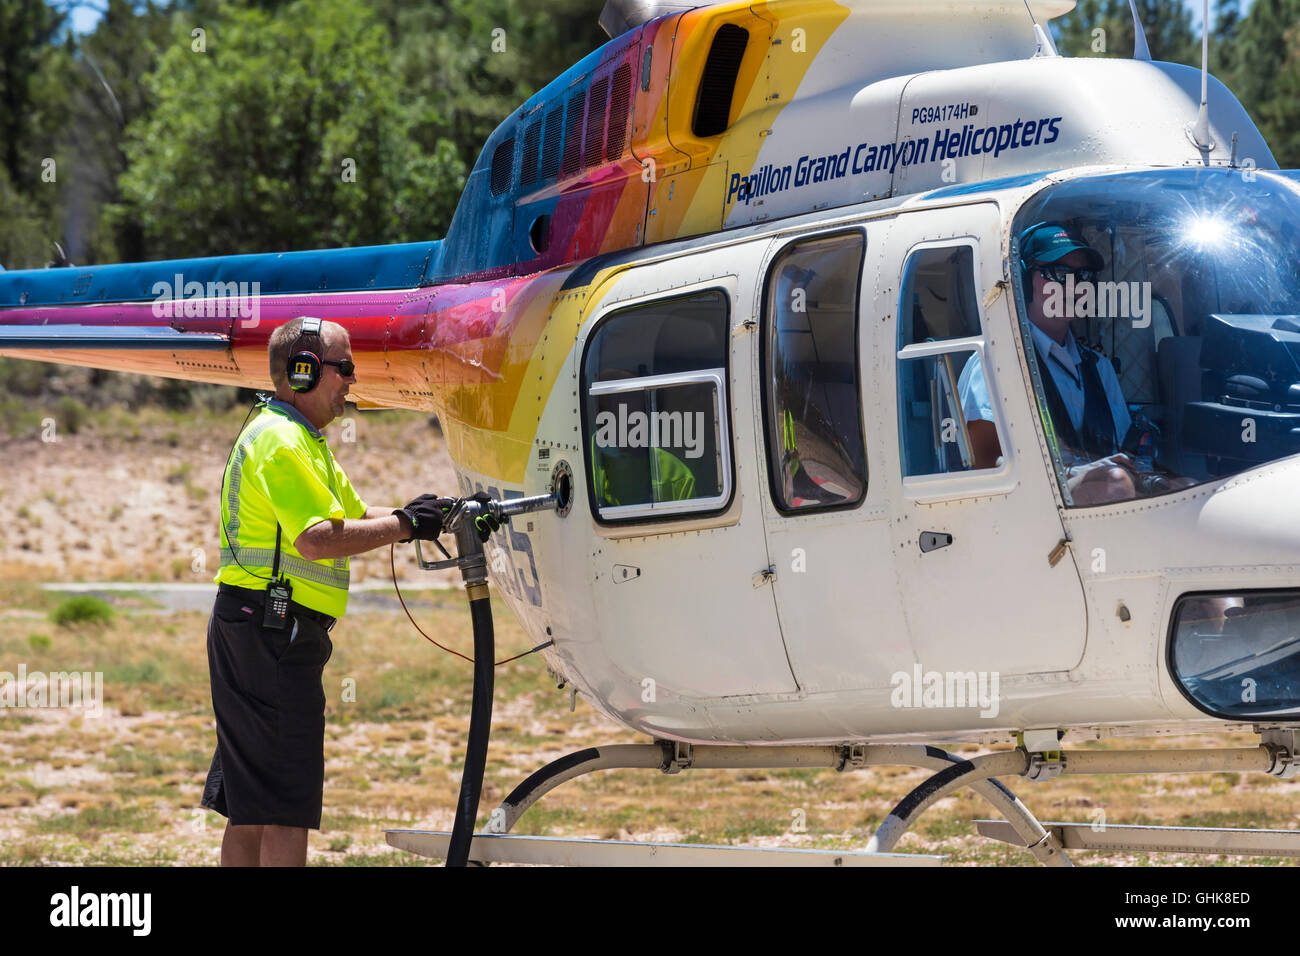 Tusayan, Arizona - A worker fuels a sightseeing helicopter at Grand Canyon National Park Airport. - Stock Image